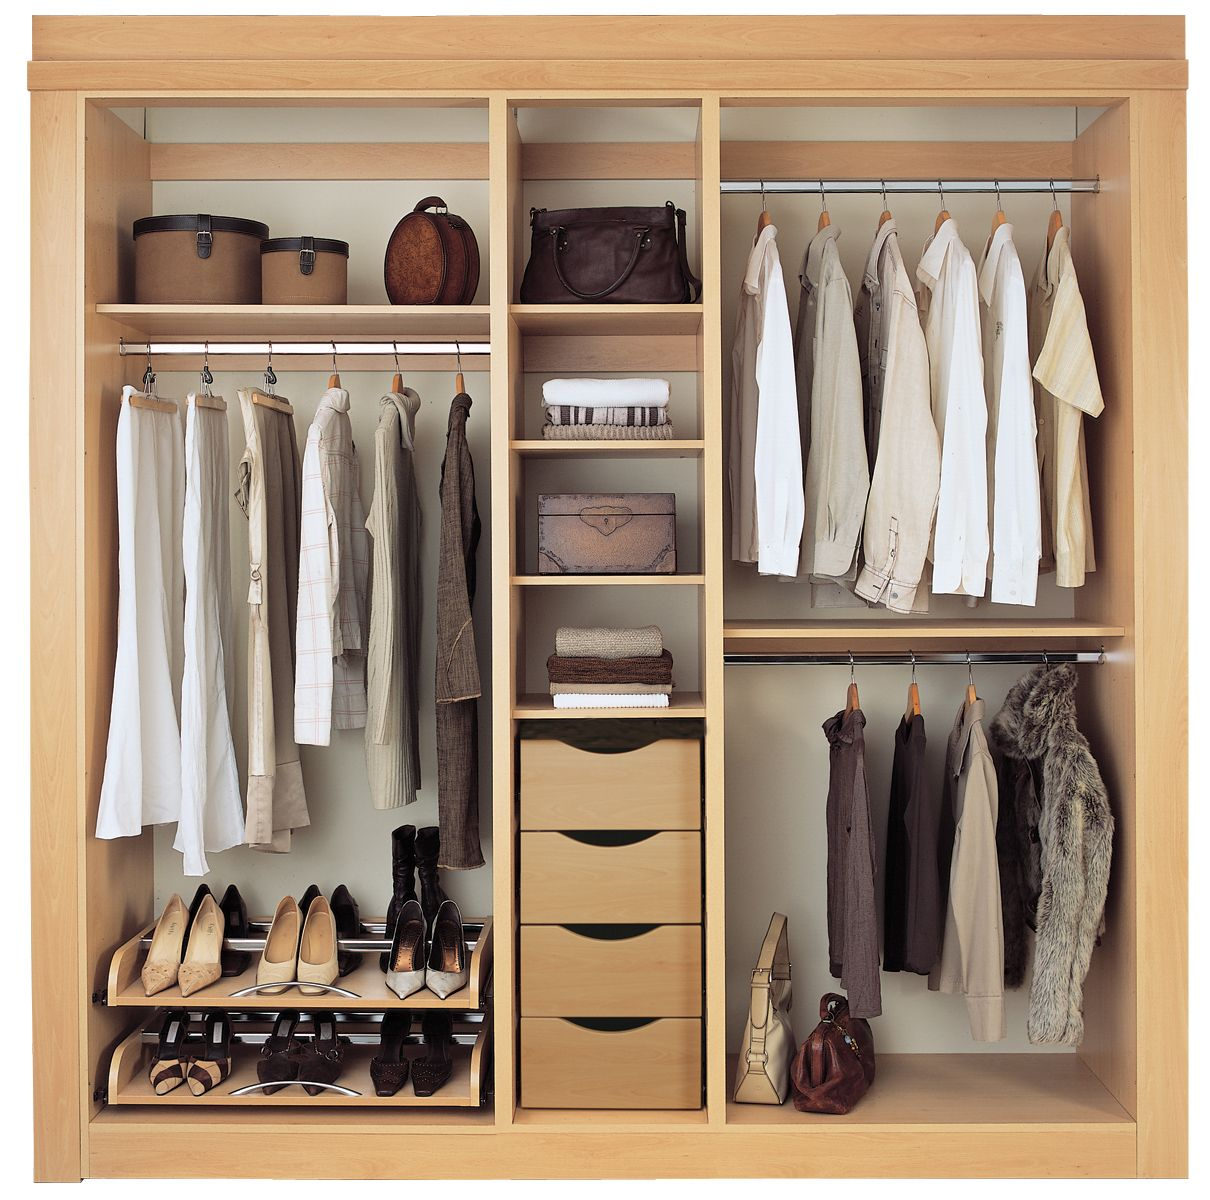 Drawers Design Is Different And Unique Built In Storage Solutions For Walk In Wardrobes